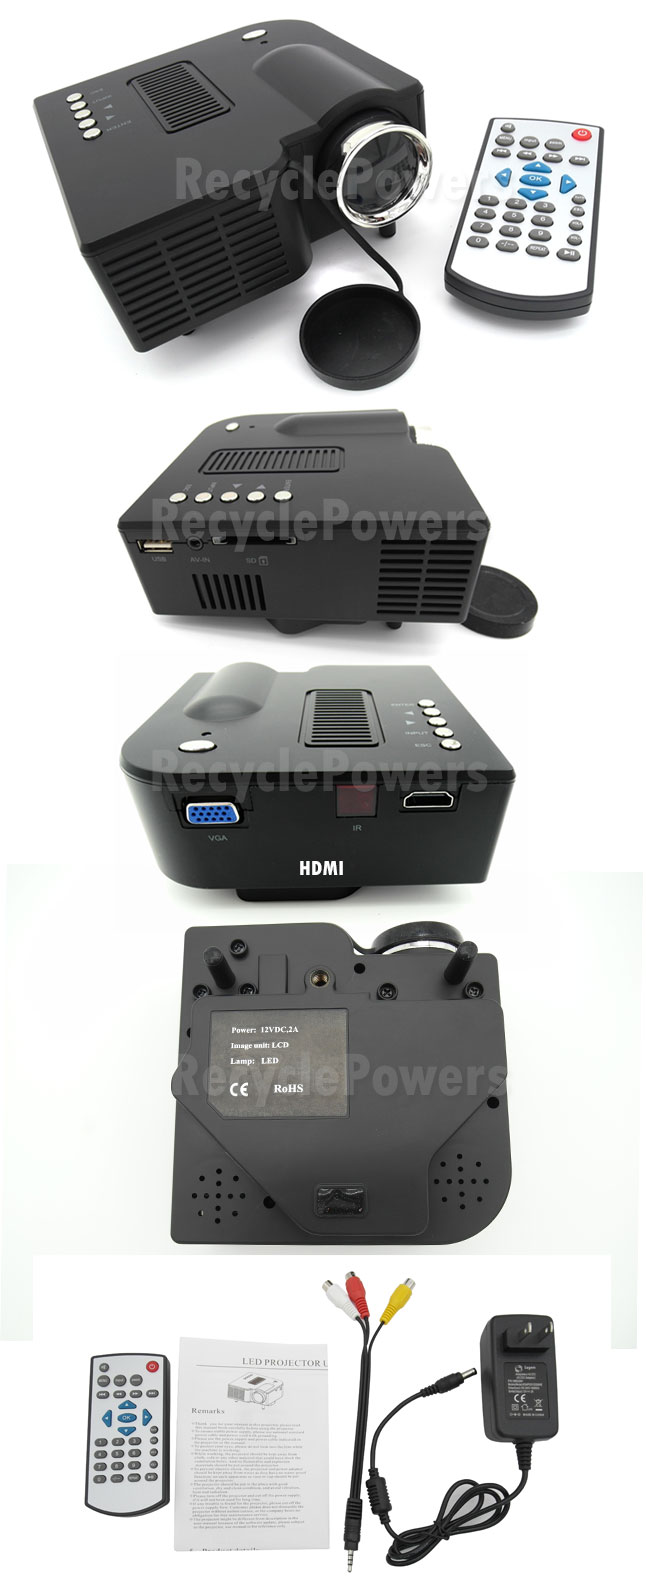 Mini micro hdmi av sd led digital video game projector for Micro hdmi projector